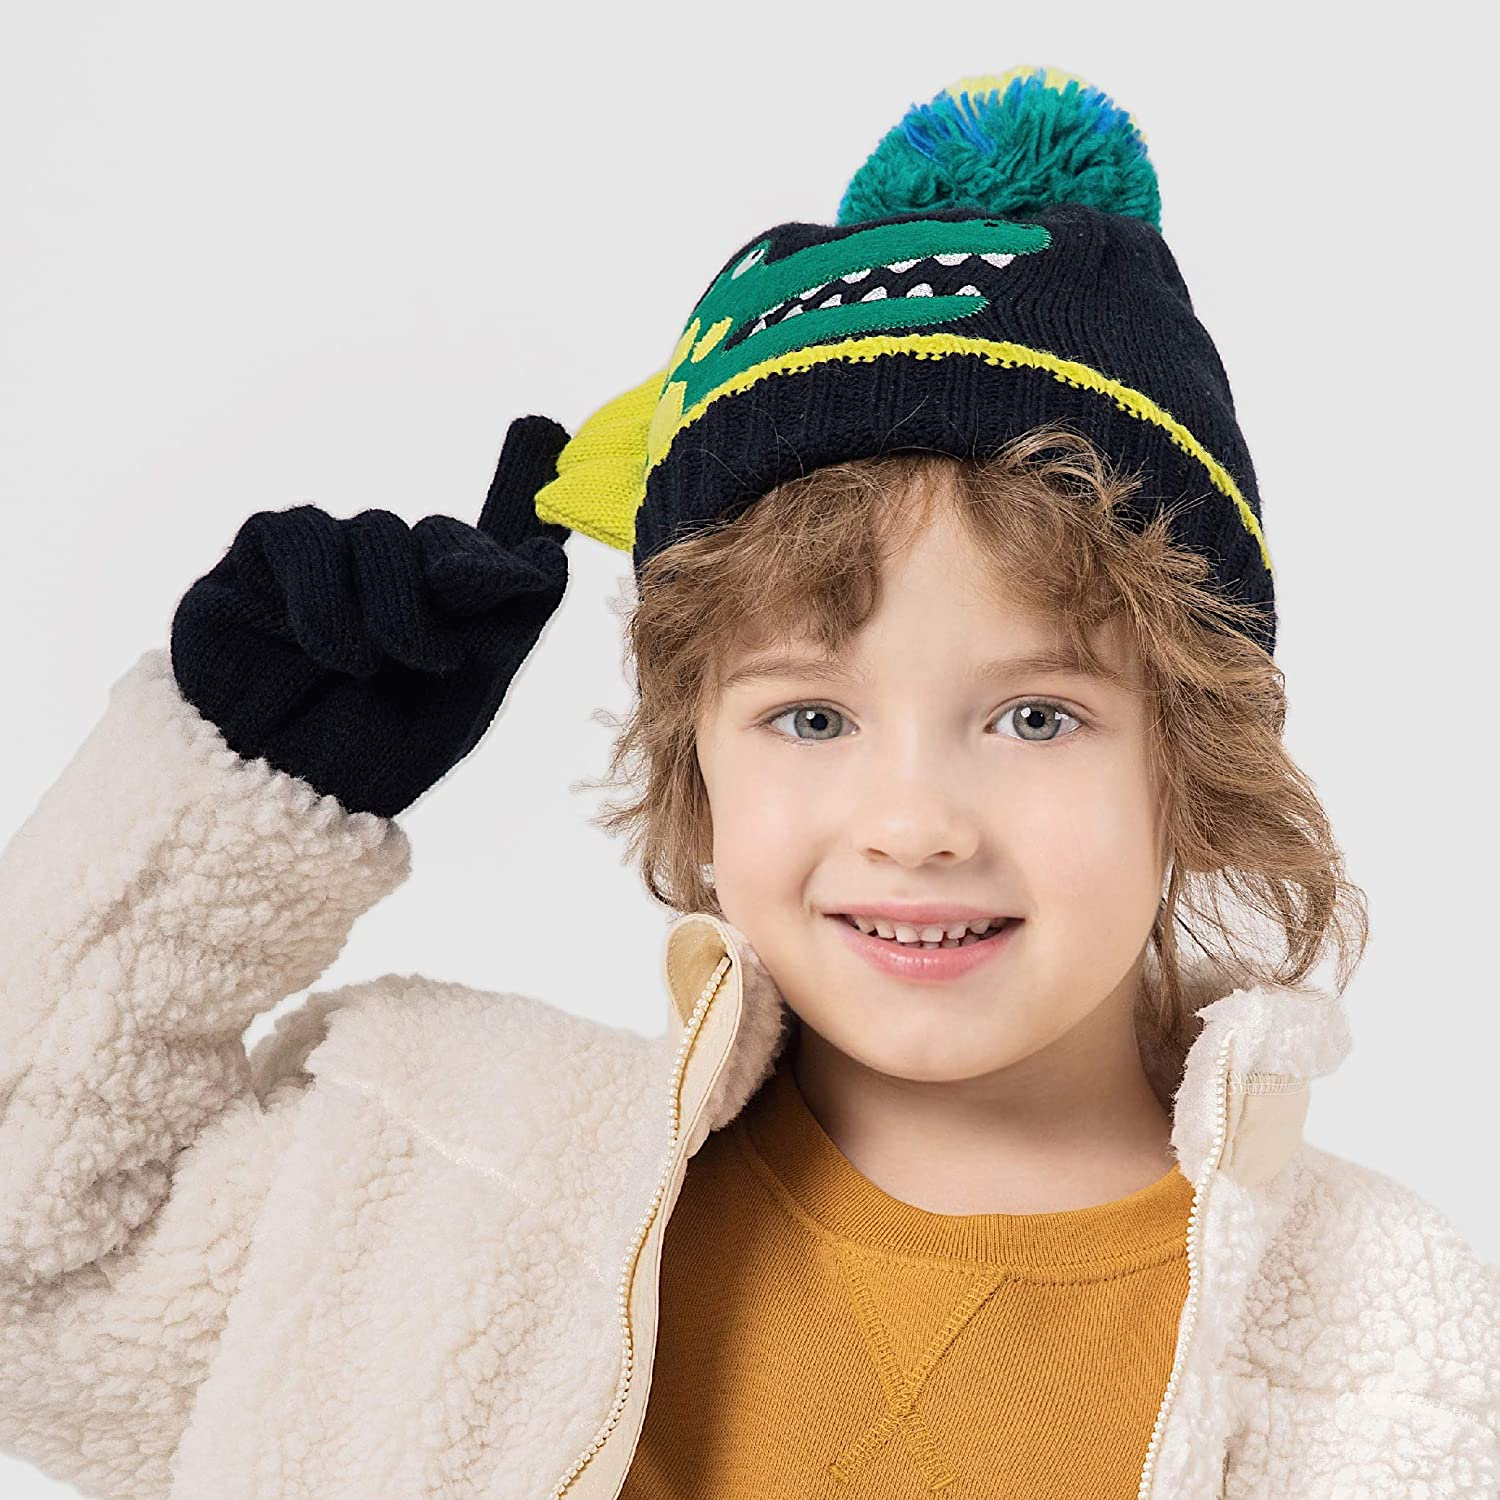 Azarxis Kids Winter Knitted Set Toddler Beanies Hat Scarf Gloves for Boys Girls